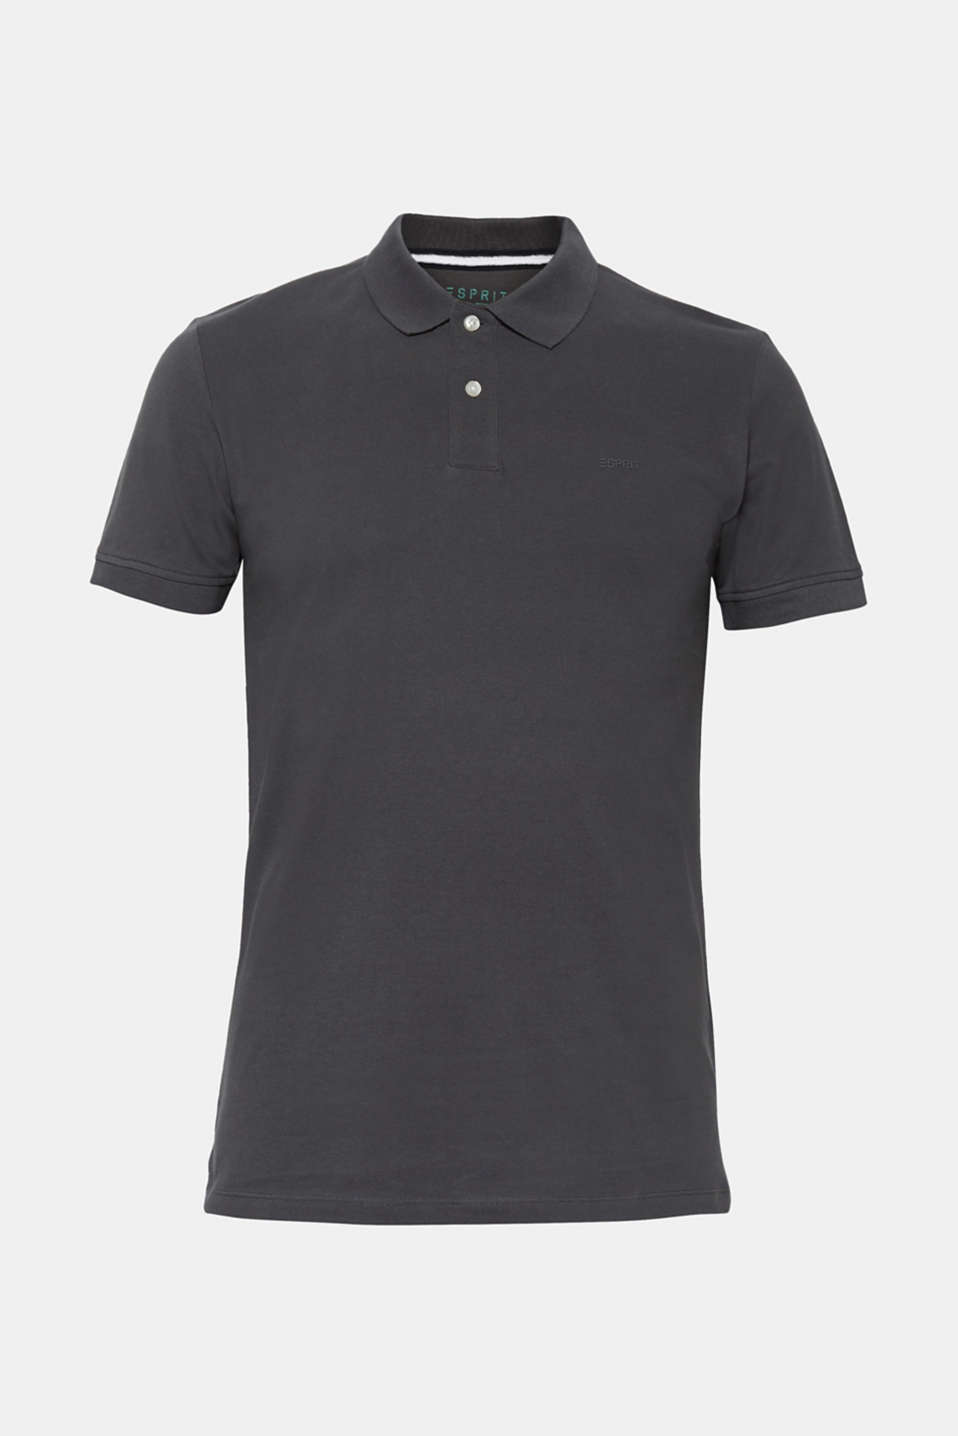 Piqué polo shirt in 100% cotton, DARK GREY, detail image number 6